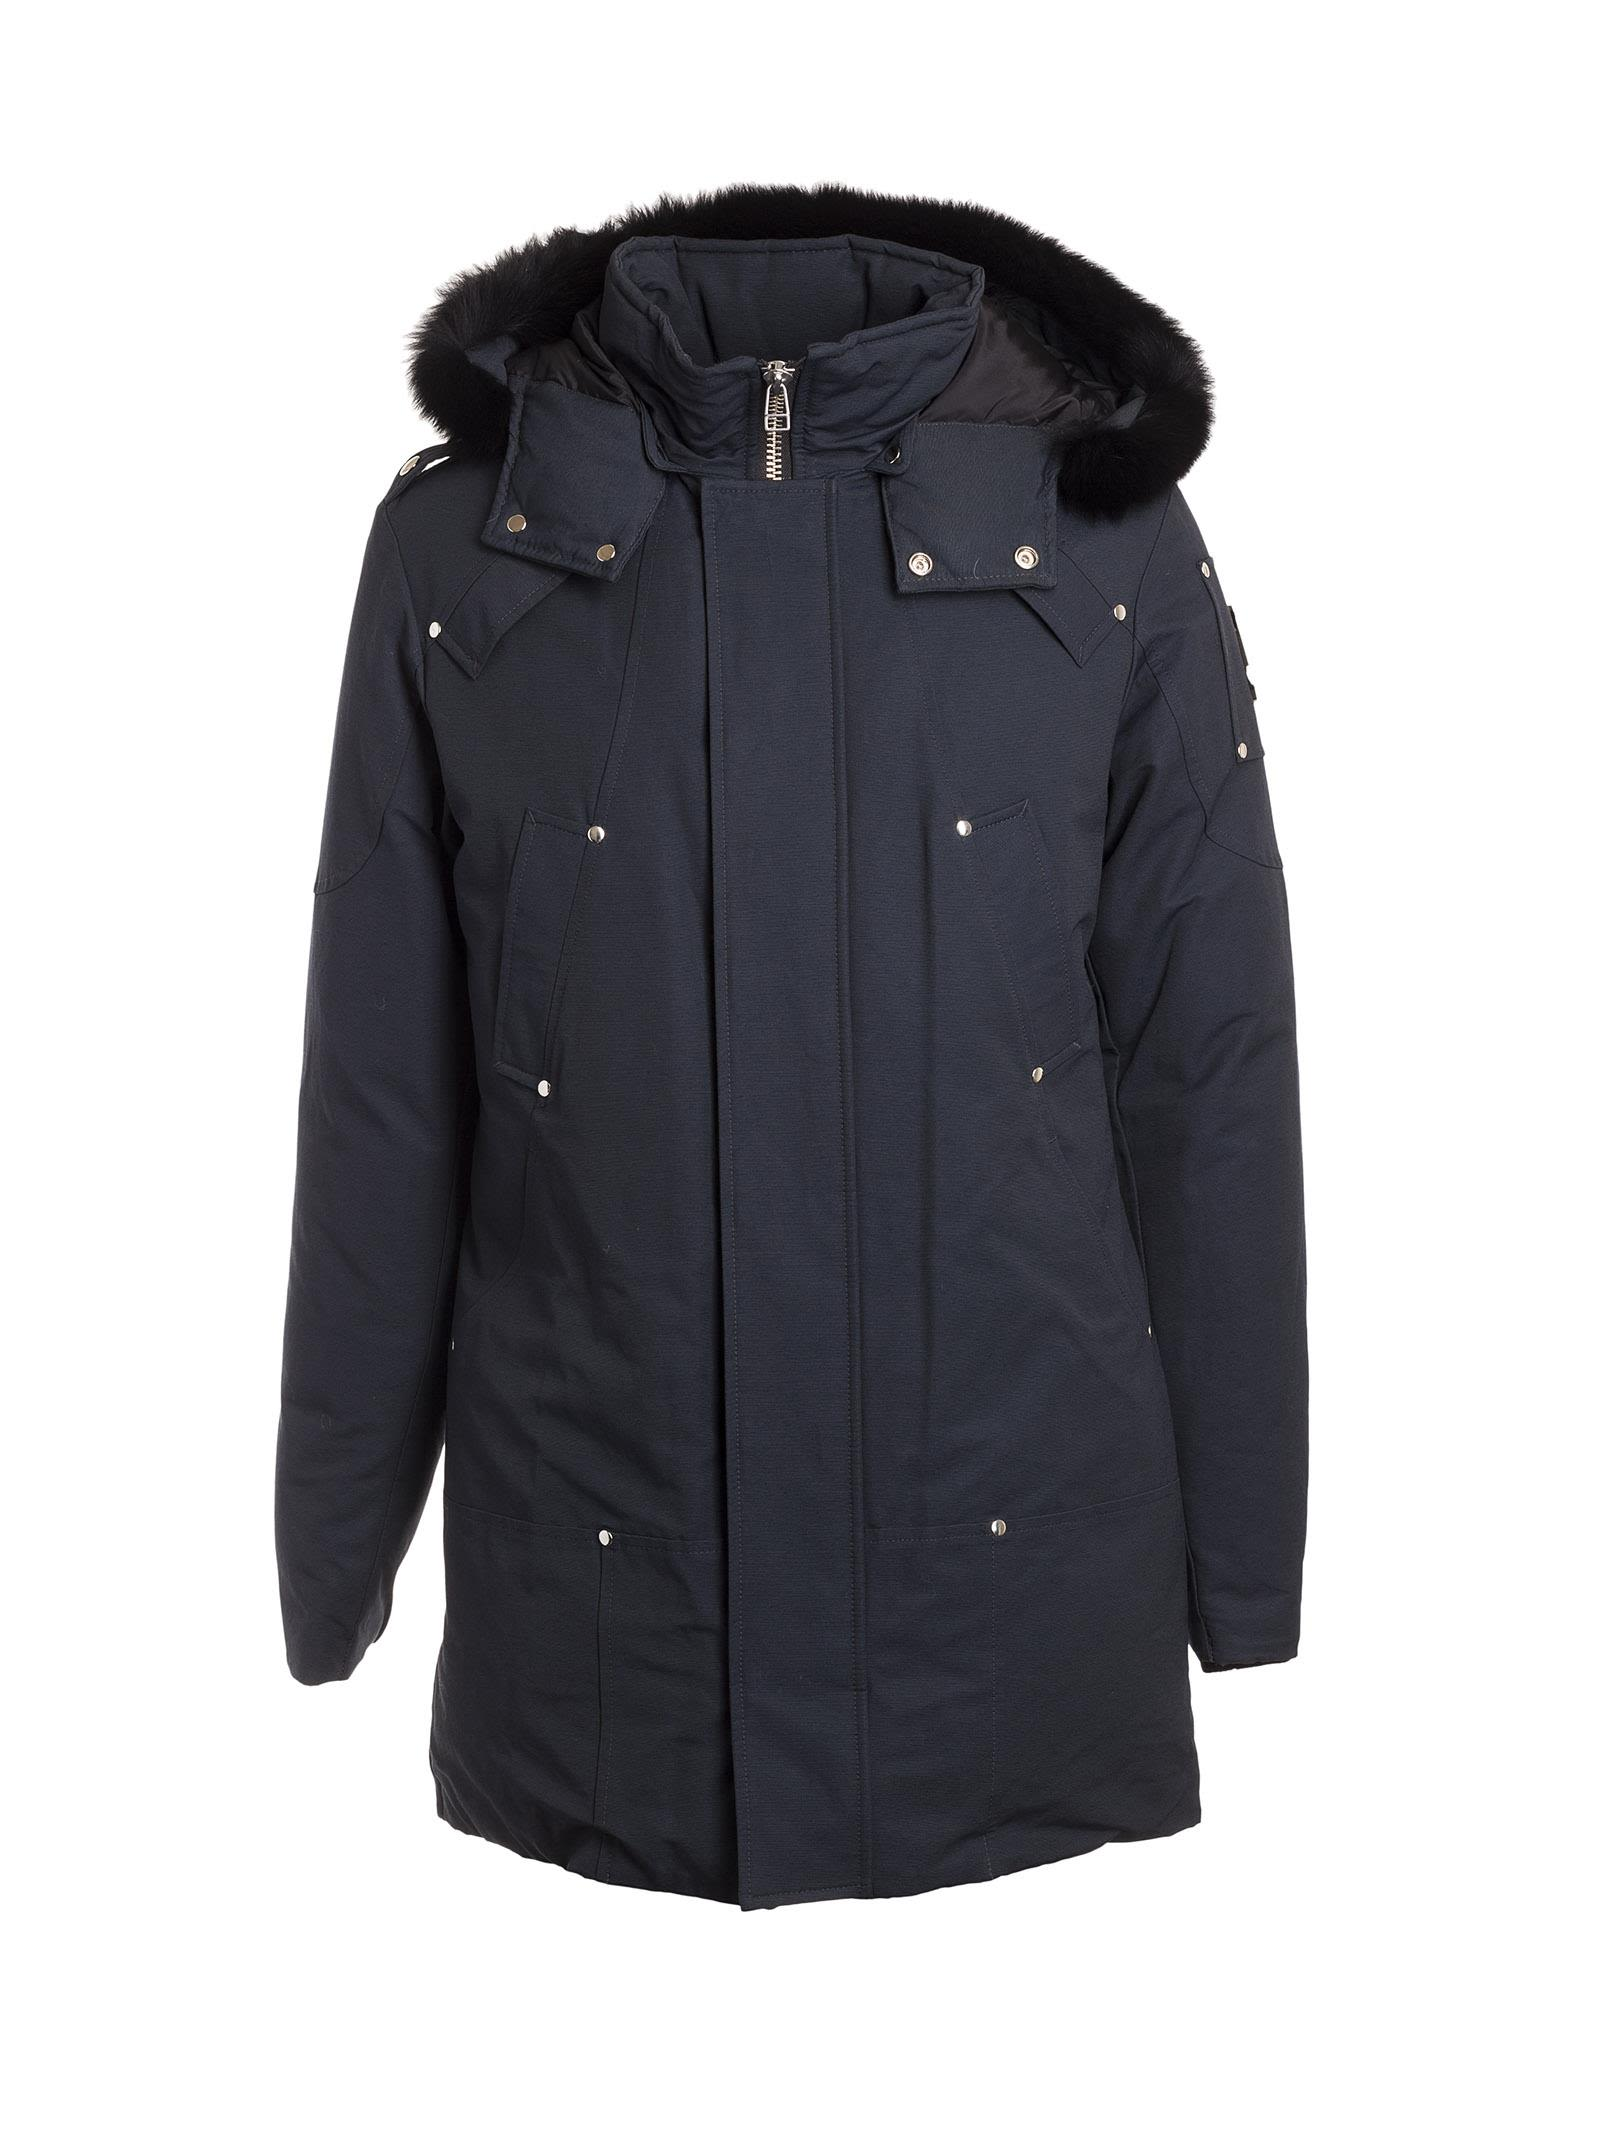 Moose Knuckle Zipped Cuffs Parka